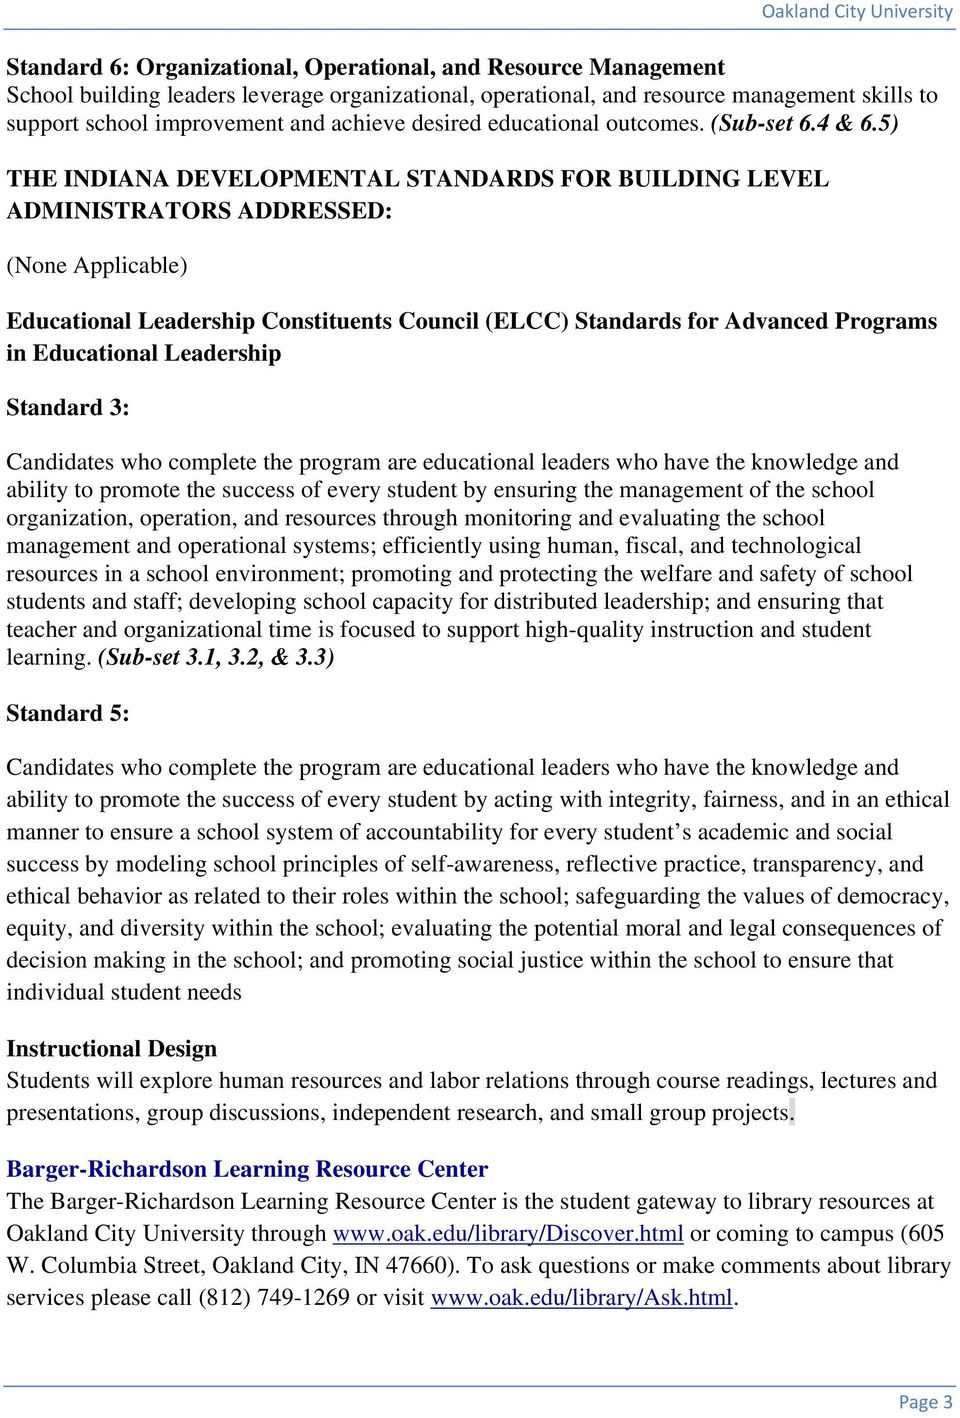 5) THE INDIANA DEVELOPMENTAL STANDARDS FOR BUILDING LEVEL ADMINISTRATORS ADDRESSED: (None Applicable) Educational Leadership Constituents Council (ELCC) for Advanced Programs in Educational